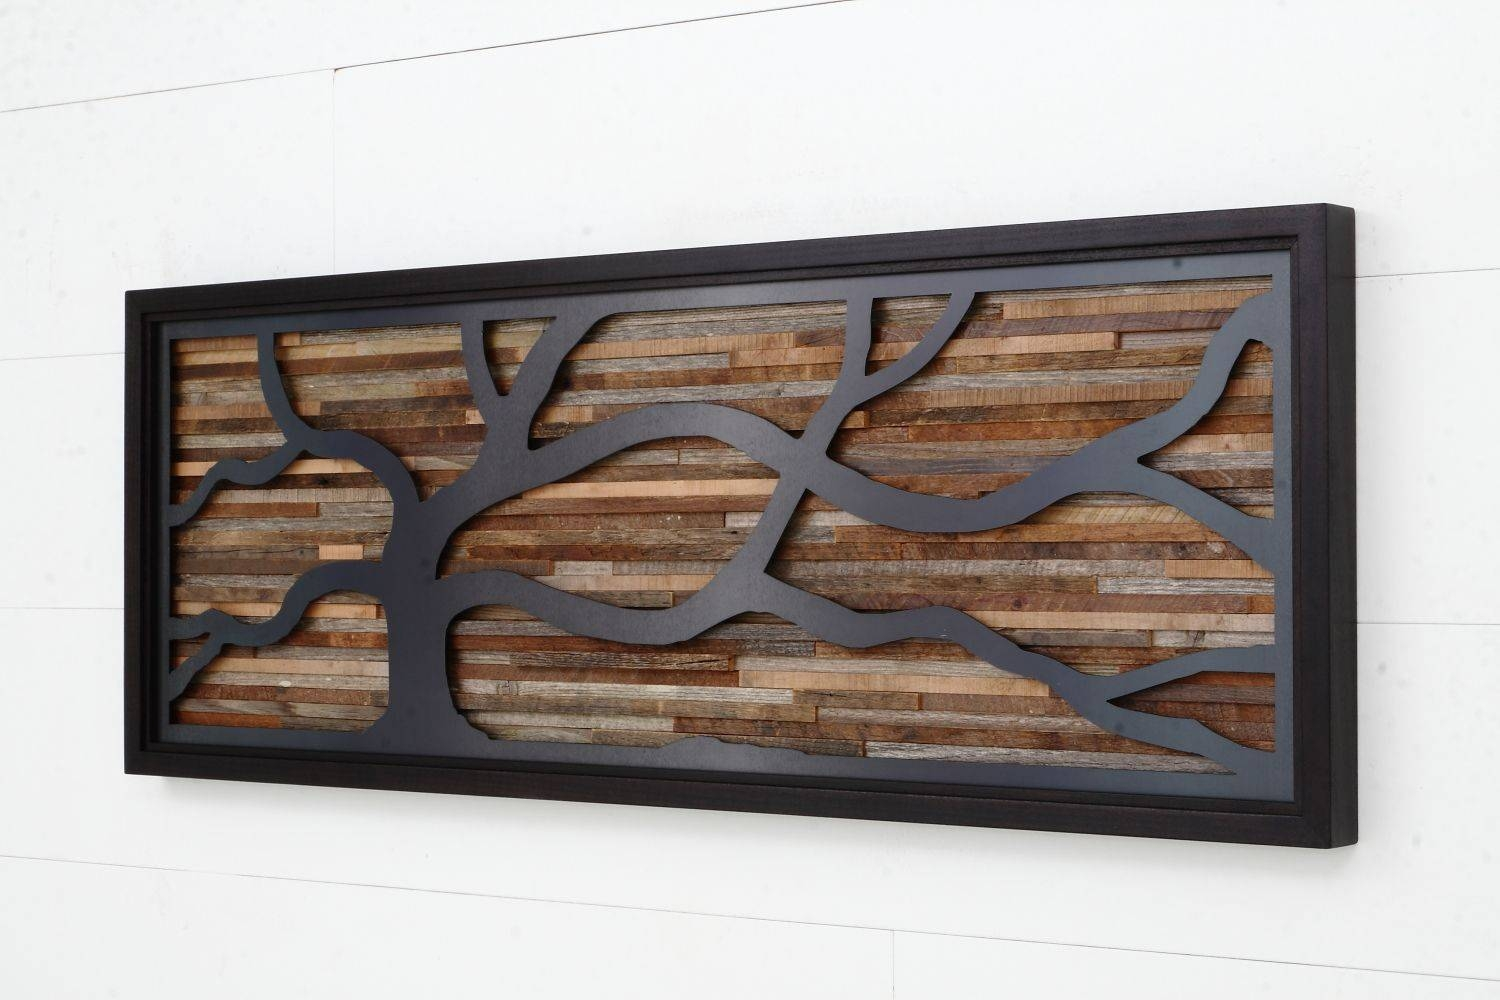 Hand Crafted Wood Wall Art Made Of Old Barnwood And Natural Black Throughout Newest Natural Wood Wall Art (Gallery 2 of 20)